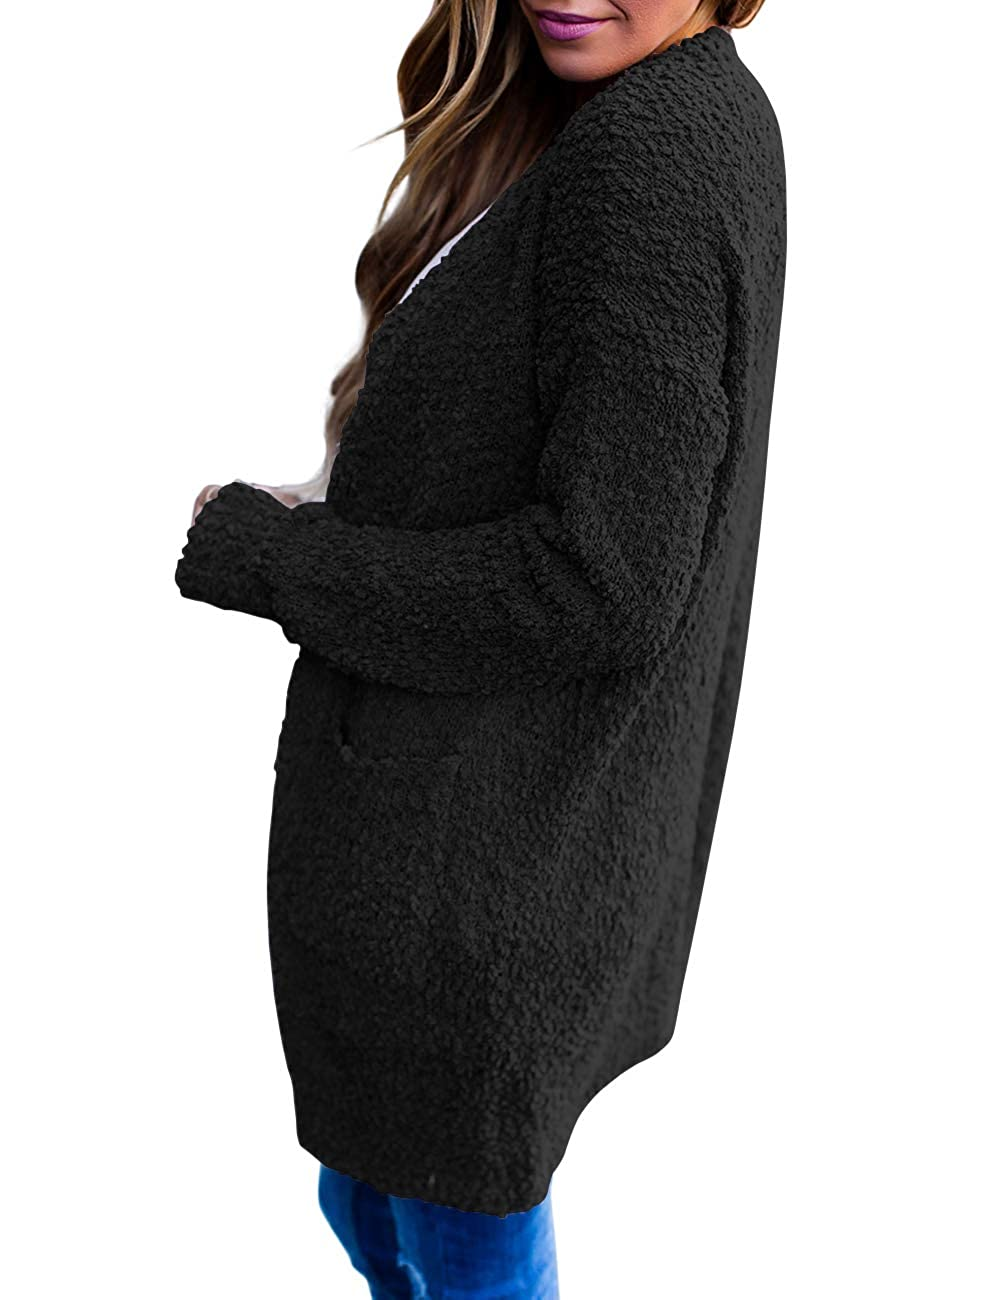 MEROKEETY Womens Long Sleeve Soft Chunky Knit Sweater Open Front Cardigan Outwear with Pockets